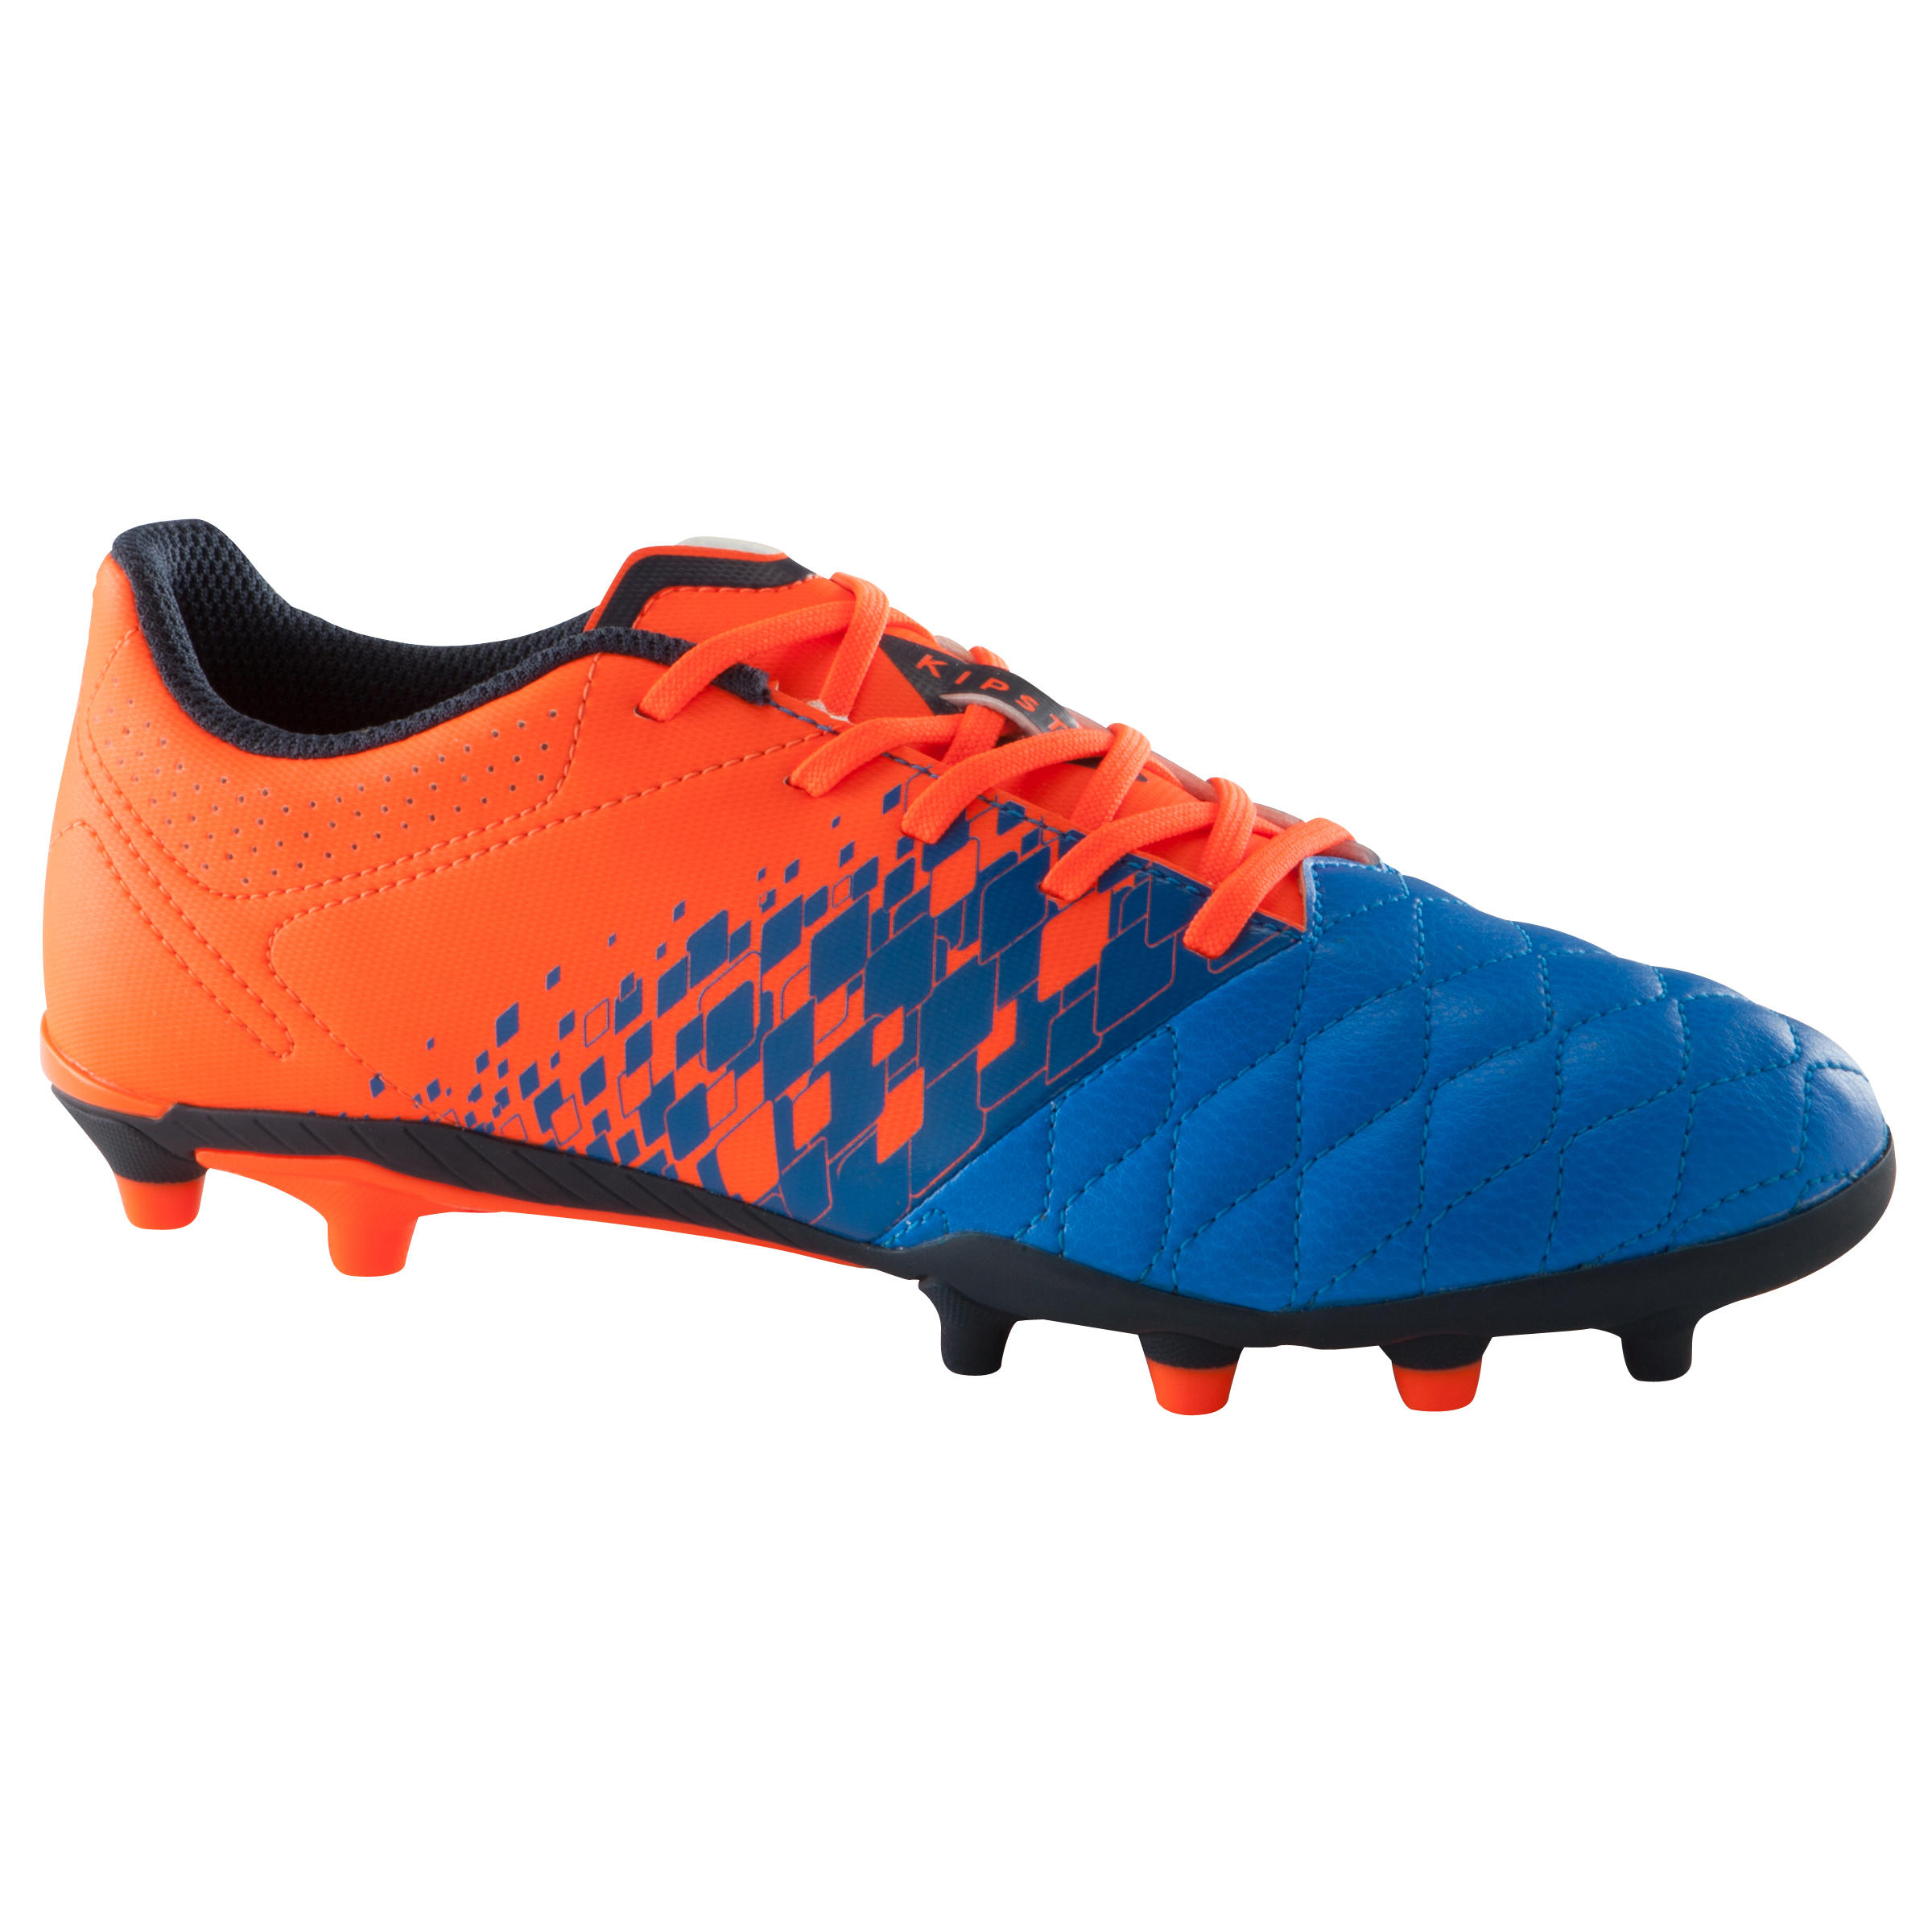 Agility 500 FG Kids' Dry Pitch Soccer Cleats - Blue/Orange